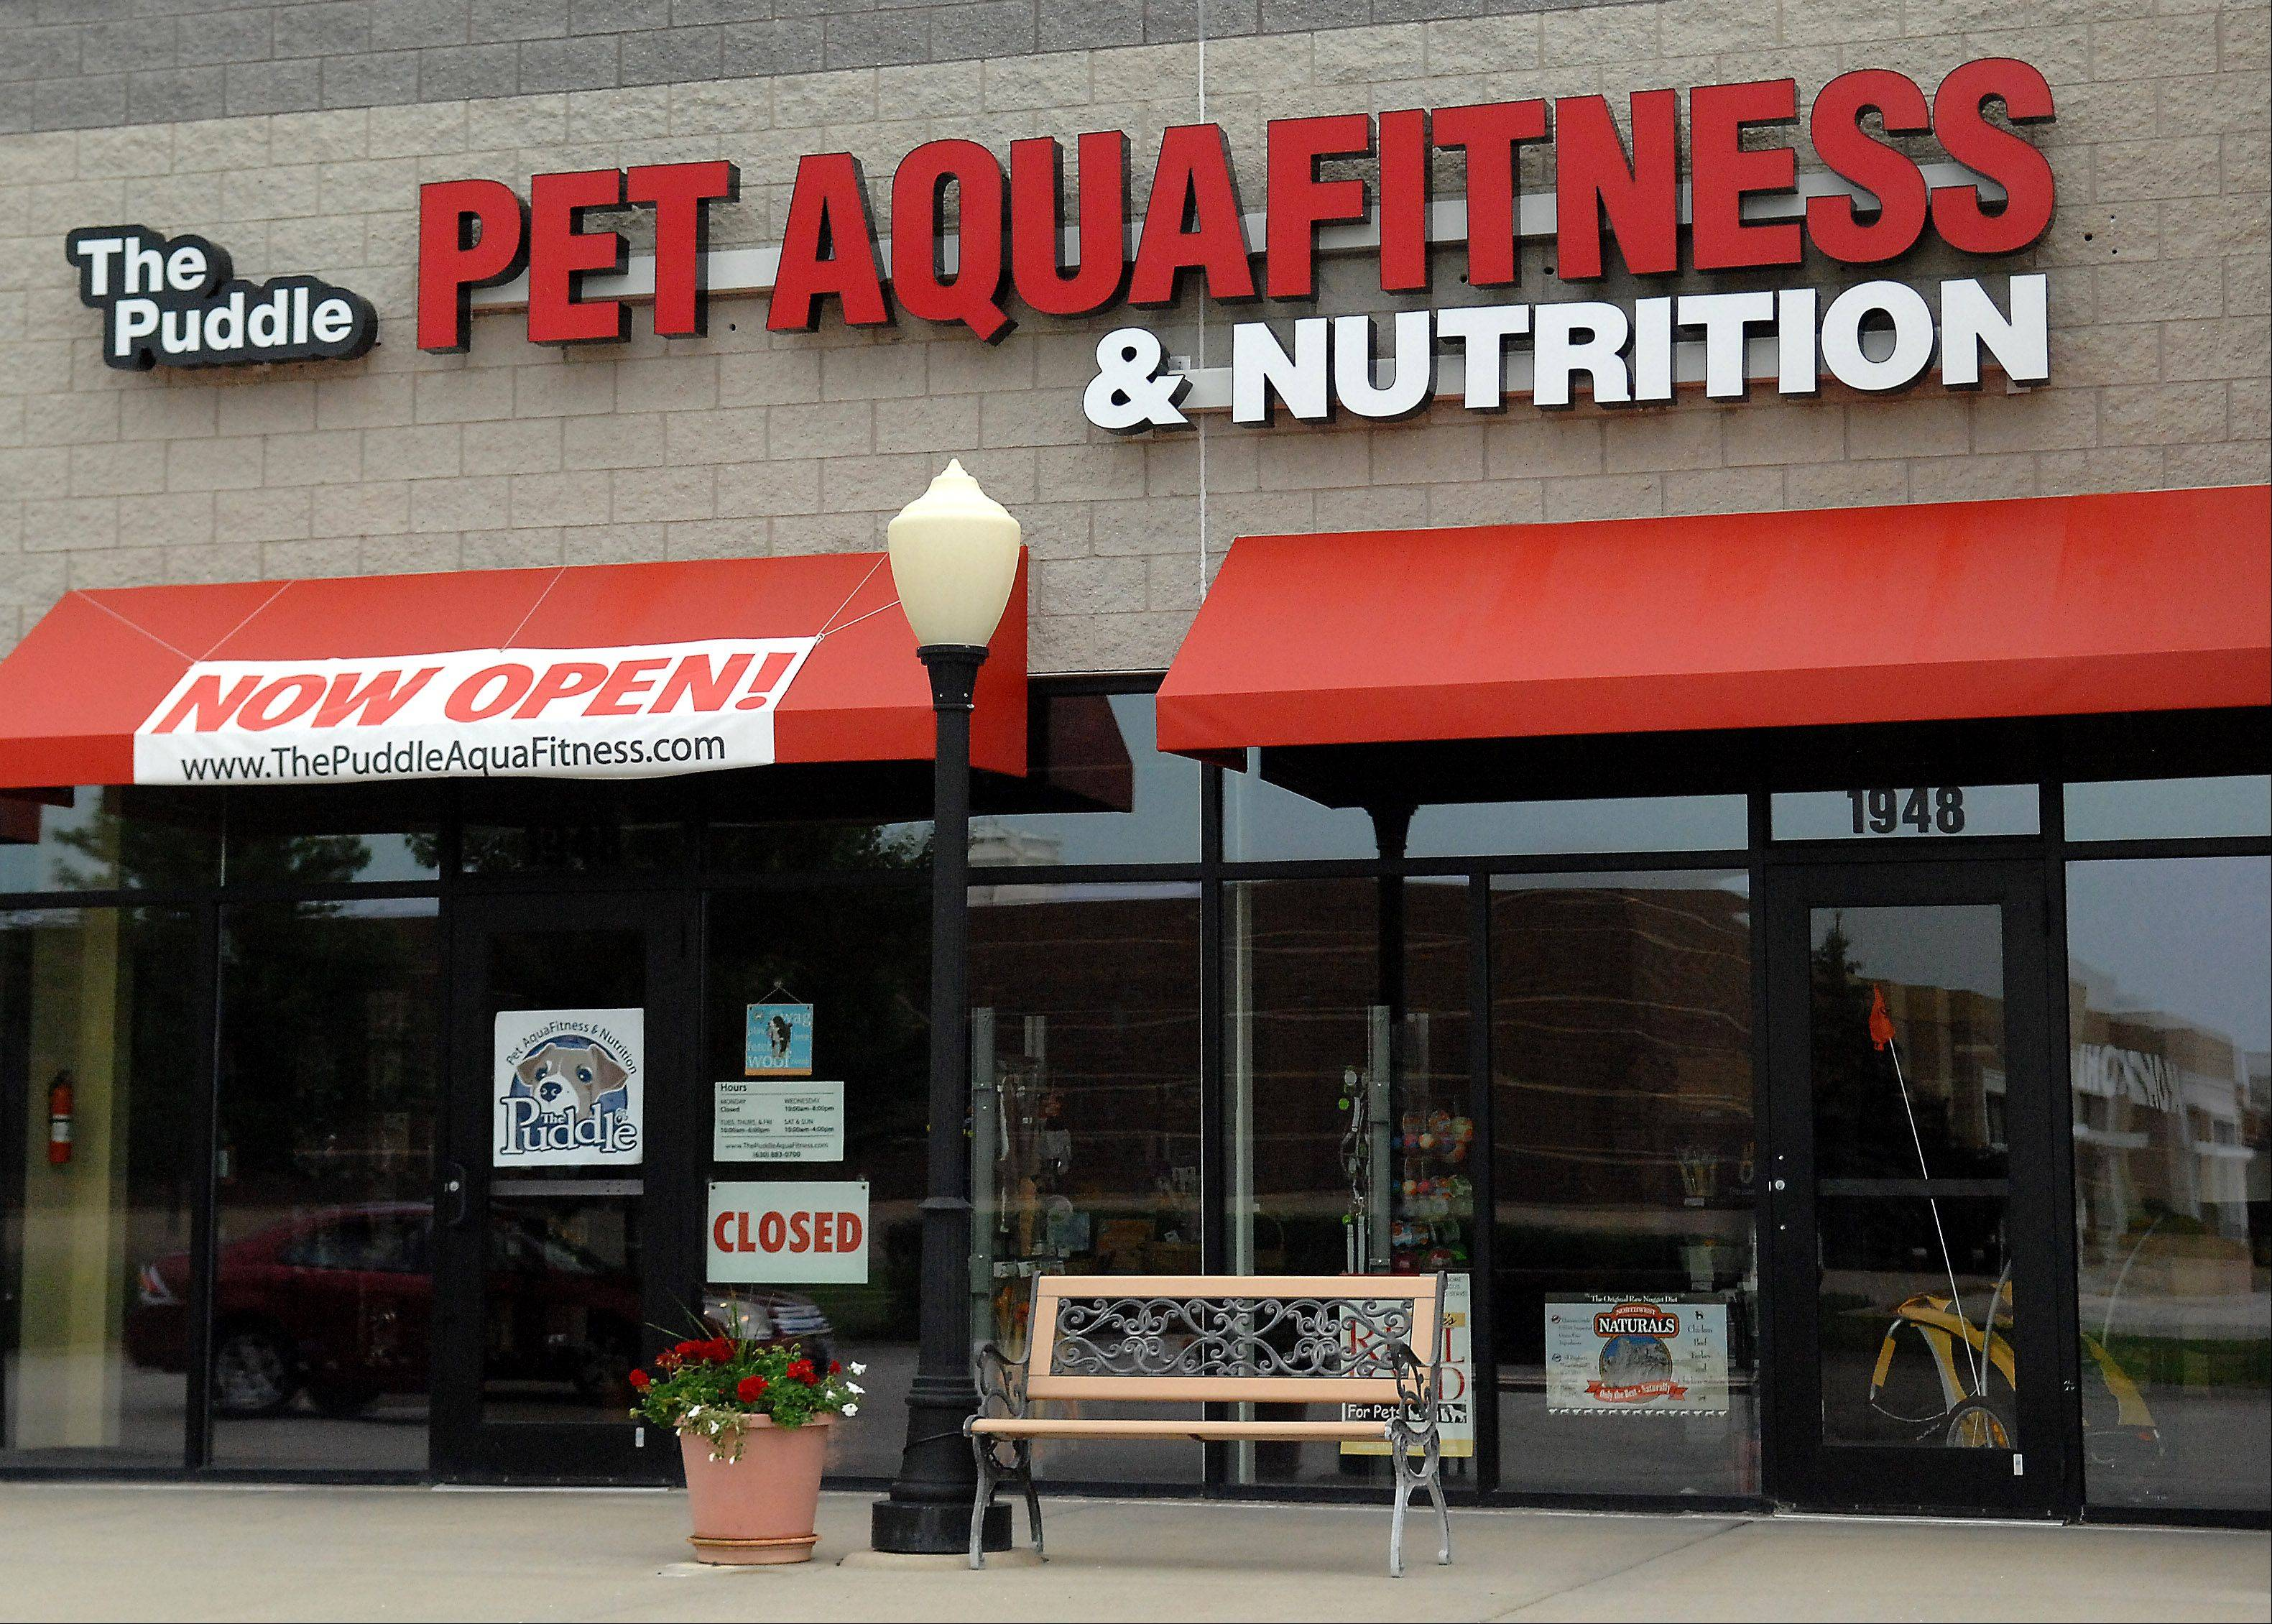 The Puddle Pet AquaFitness and Nutrition recently opened in South Elgin, offering swim sessions for dogs, pet bodywork massage, a do-it-yourself dog wash, a healthy weight pet program and pet food.